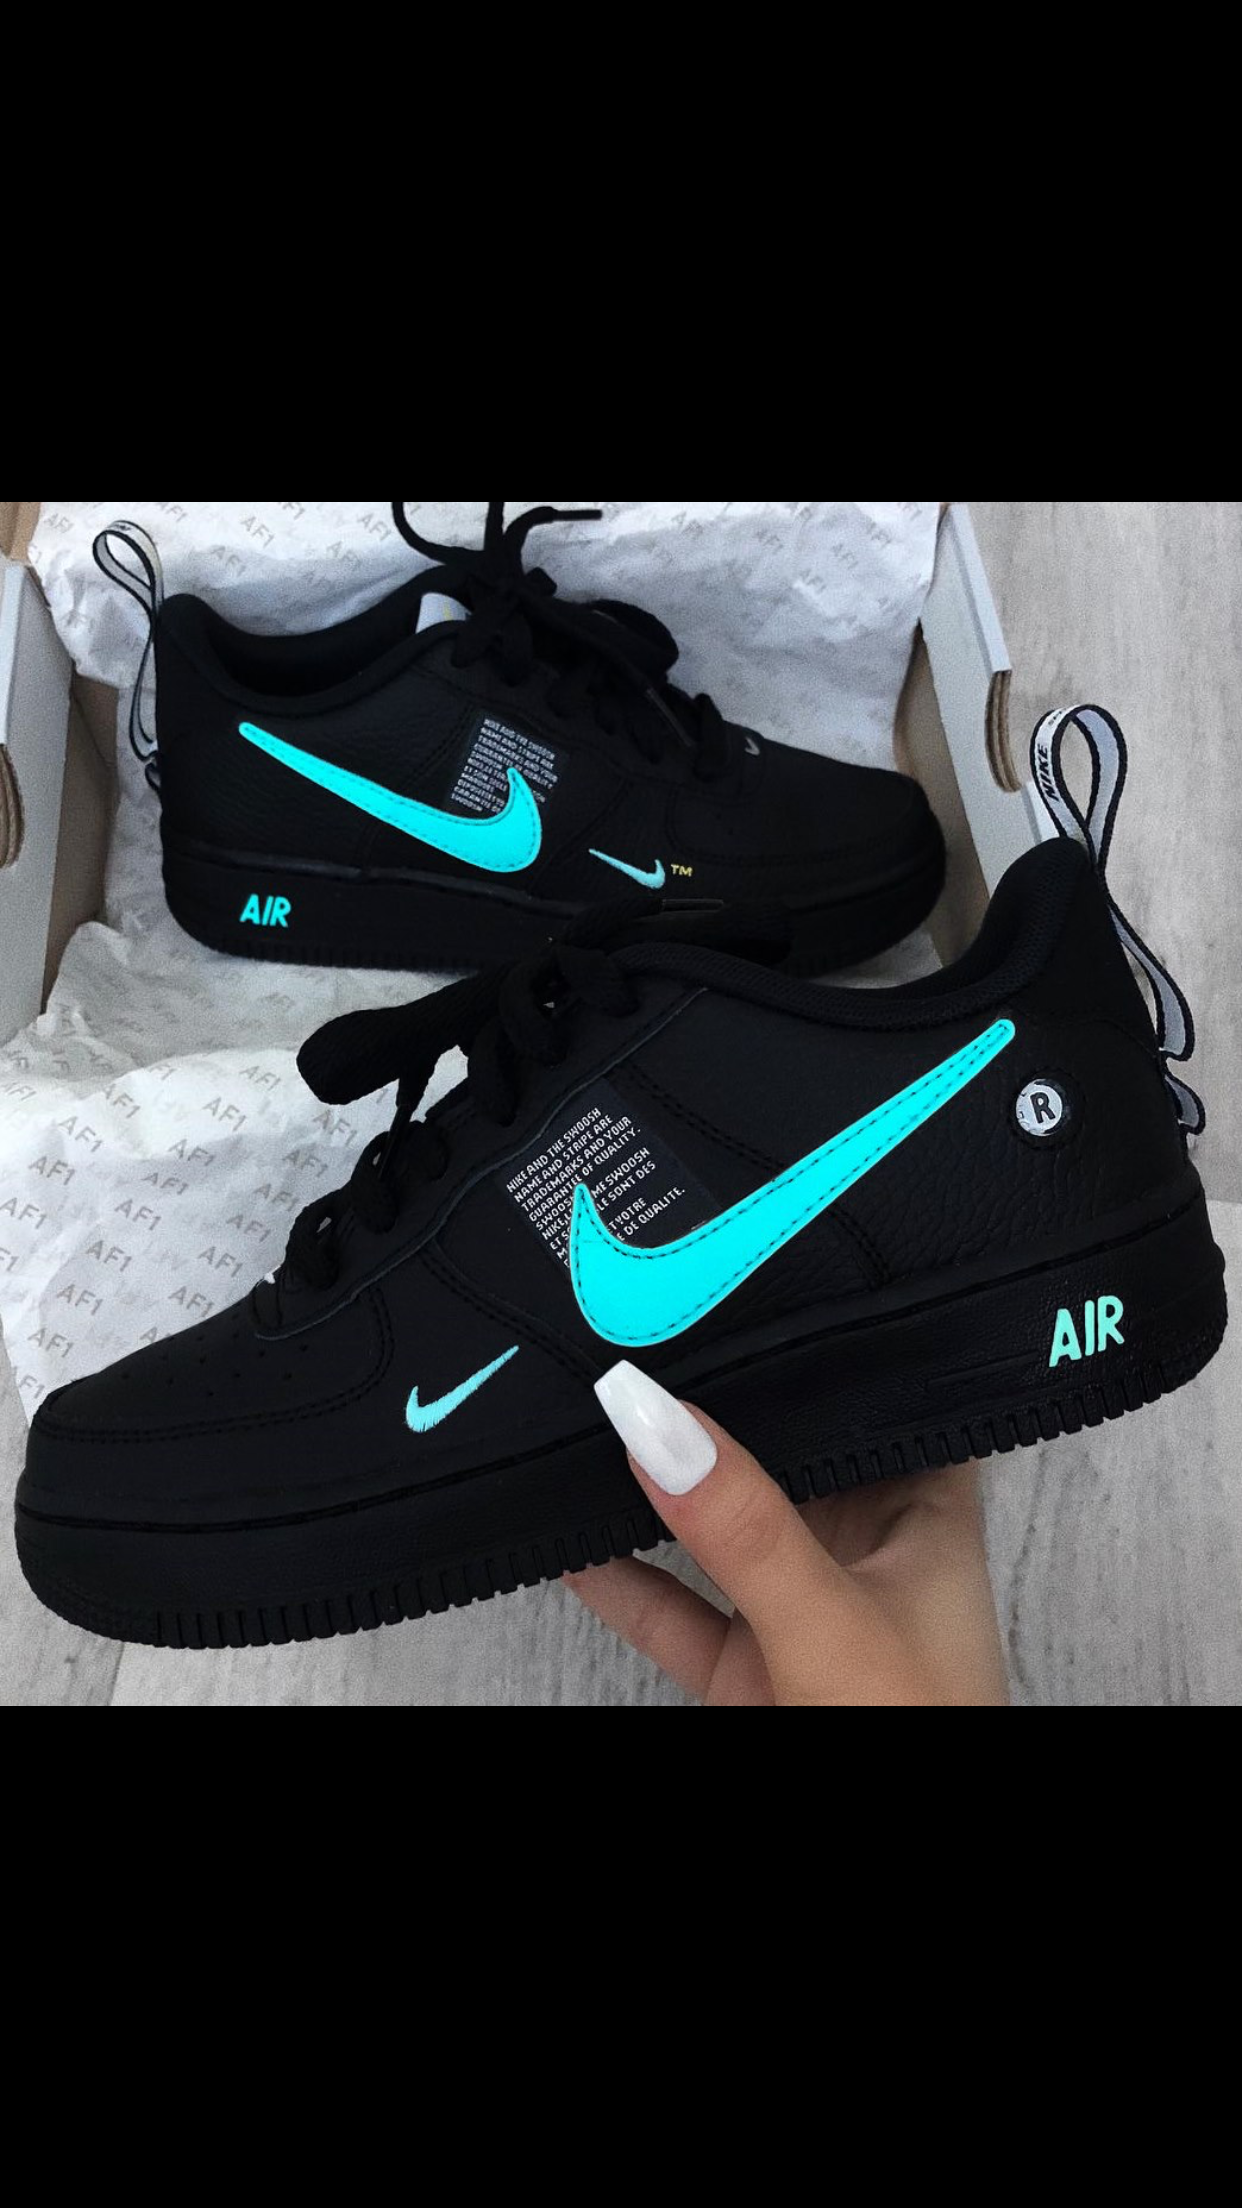 check out 97a97 3f040 Vans Shoes, Adidas Shoes, Shoes Sneakers, Shoes Sandals, Fresh Shoes,  Sneaker